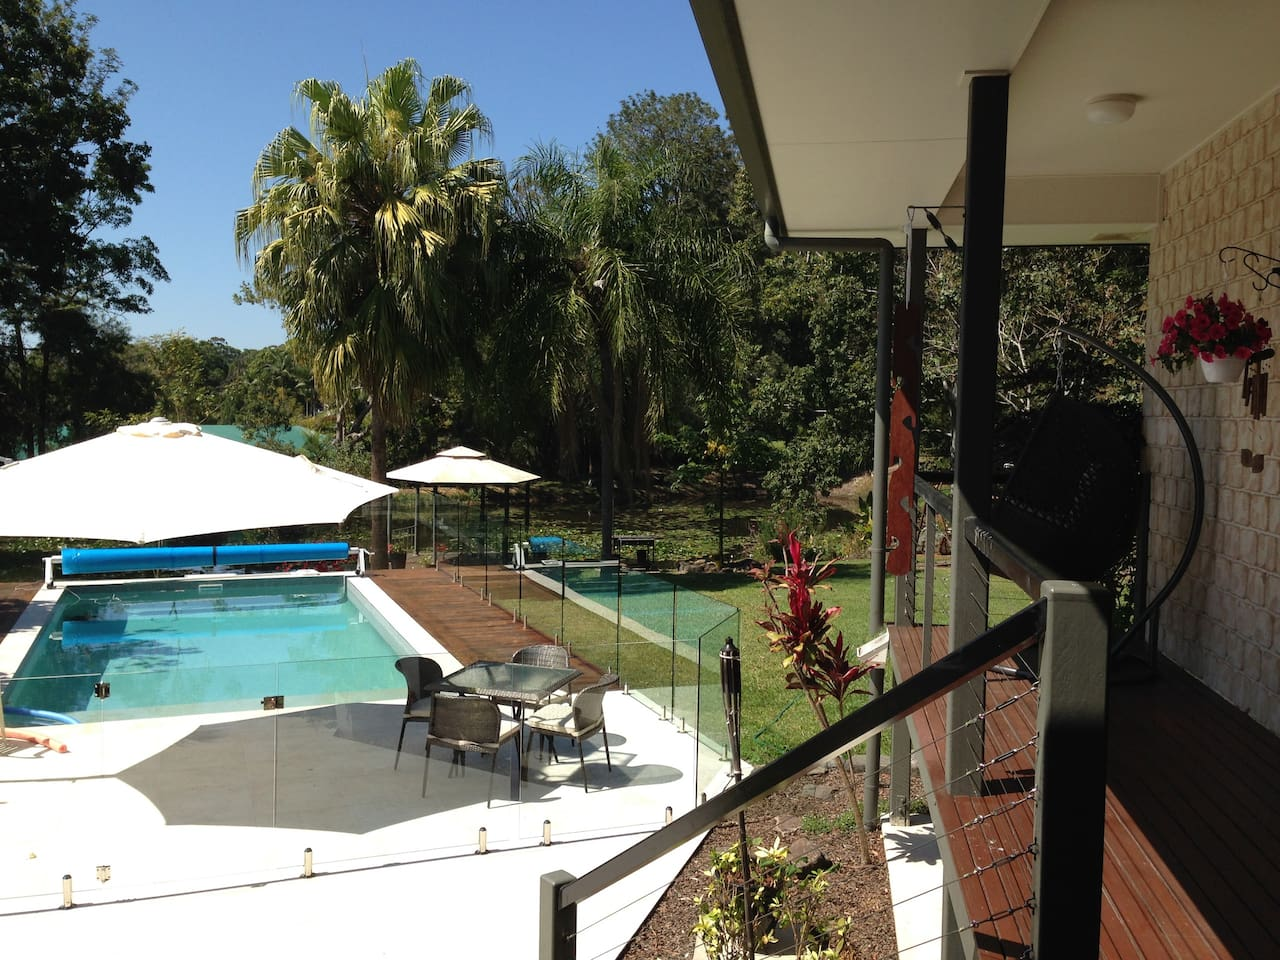 View from deck over pool, lawn and dam.